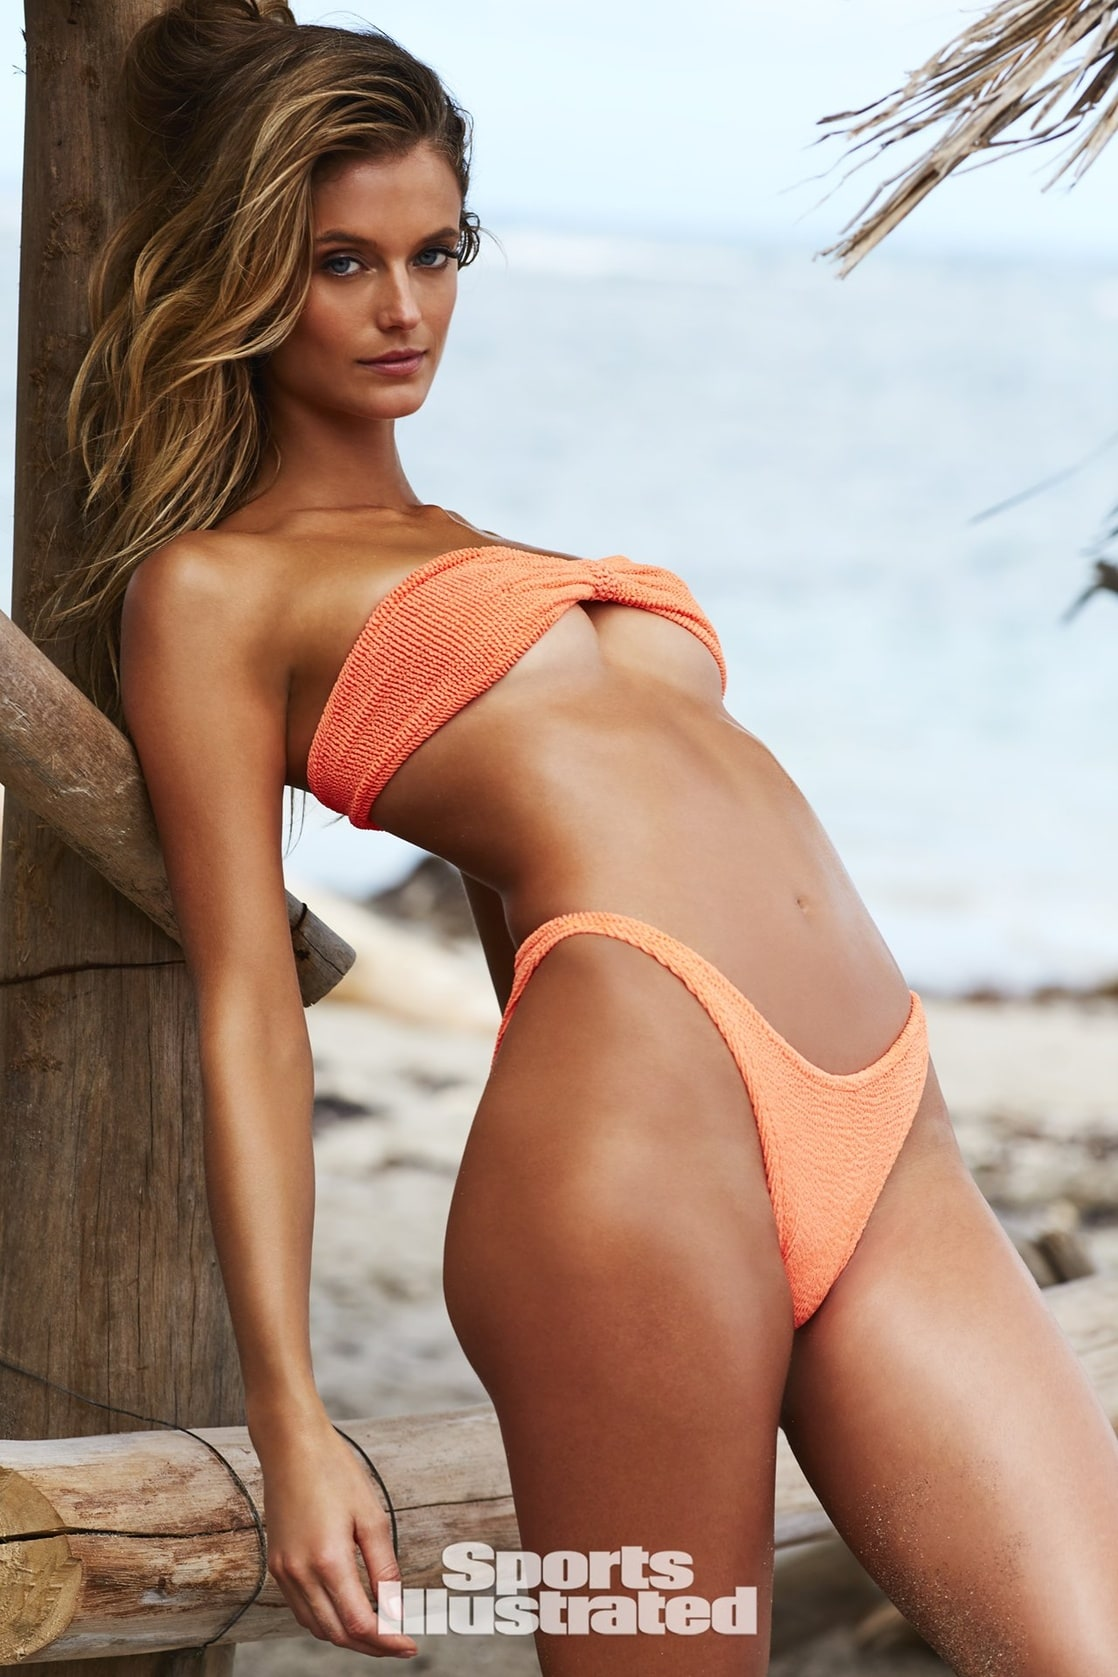 Image result for sports illustrated swimsuit 2018 models list